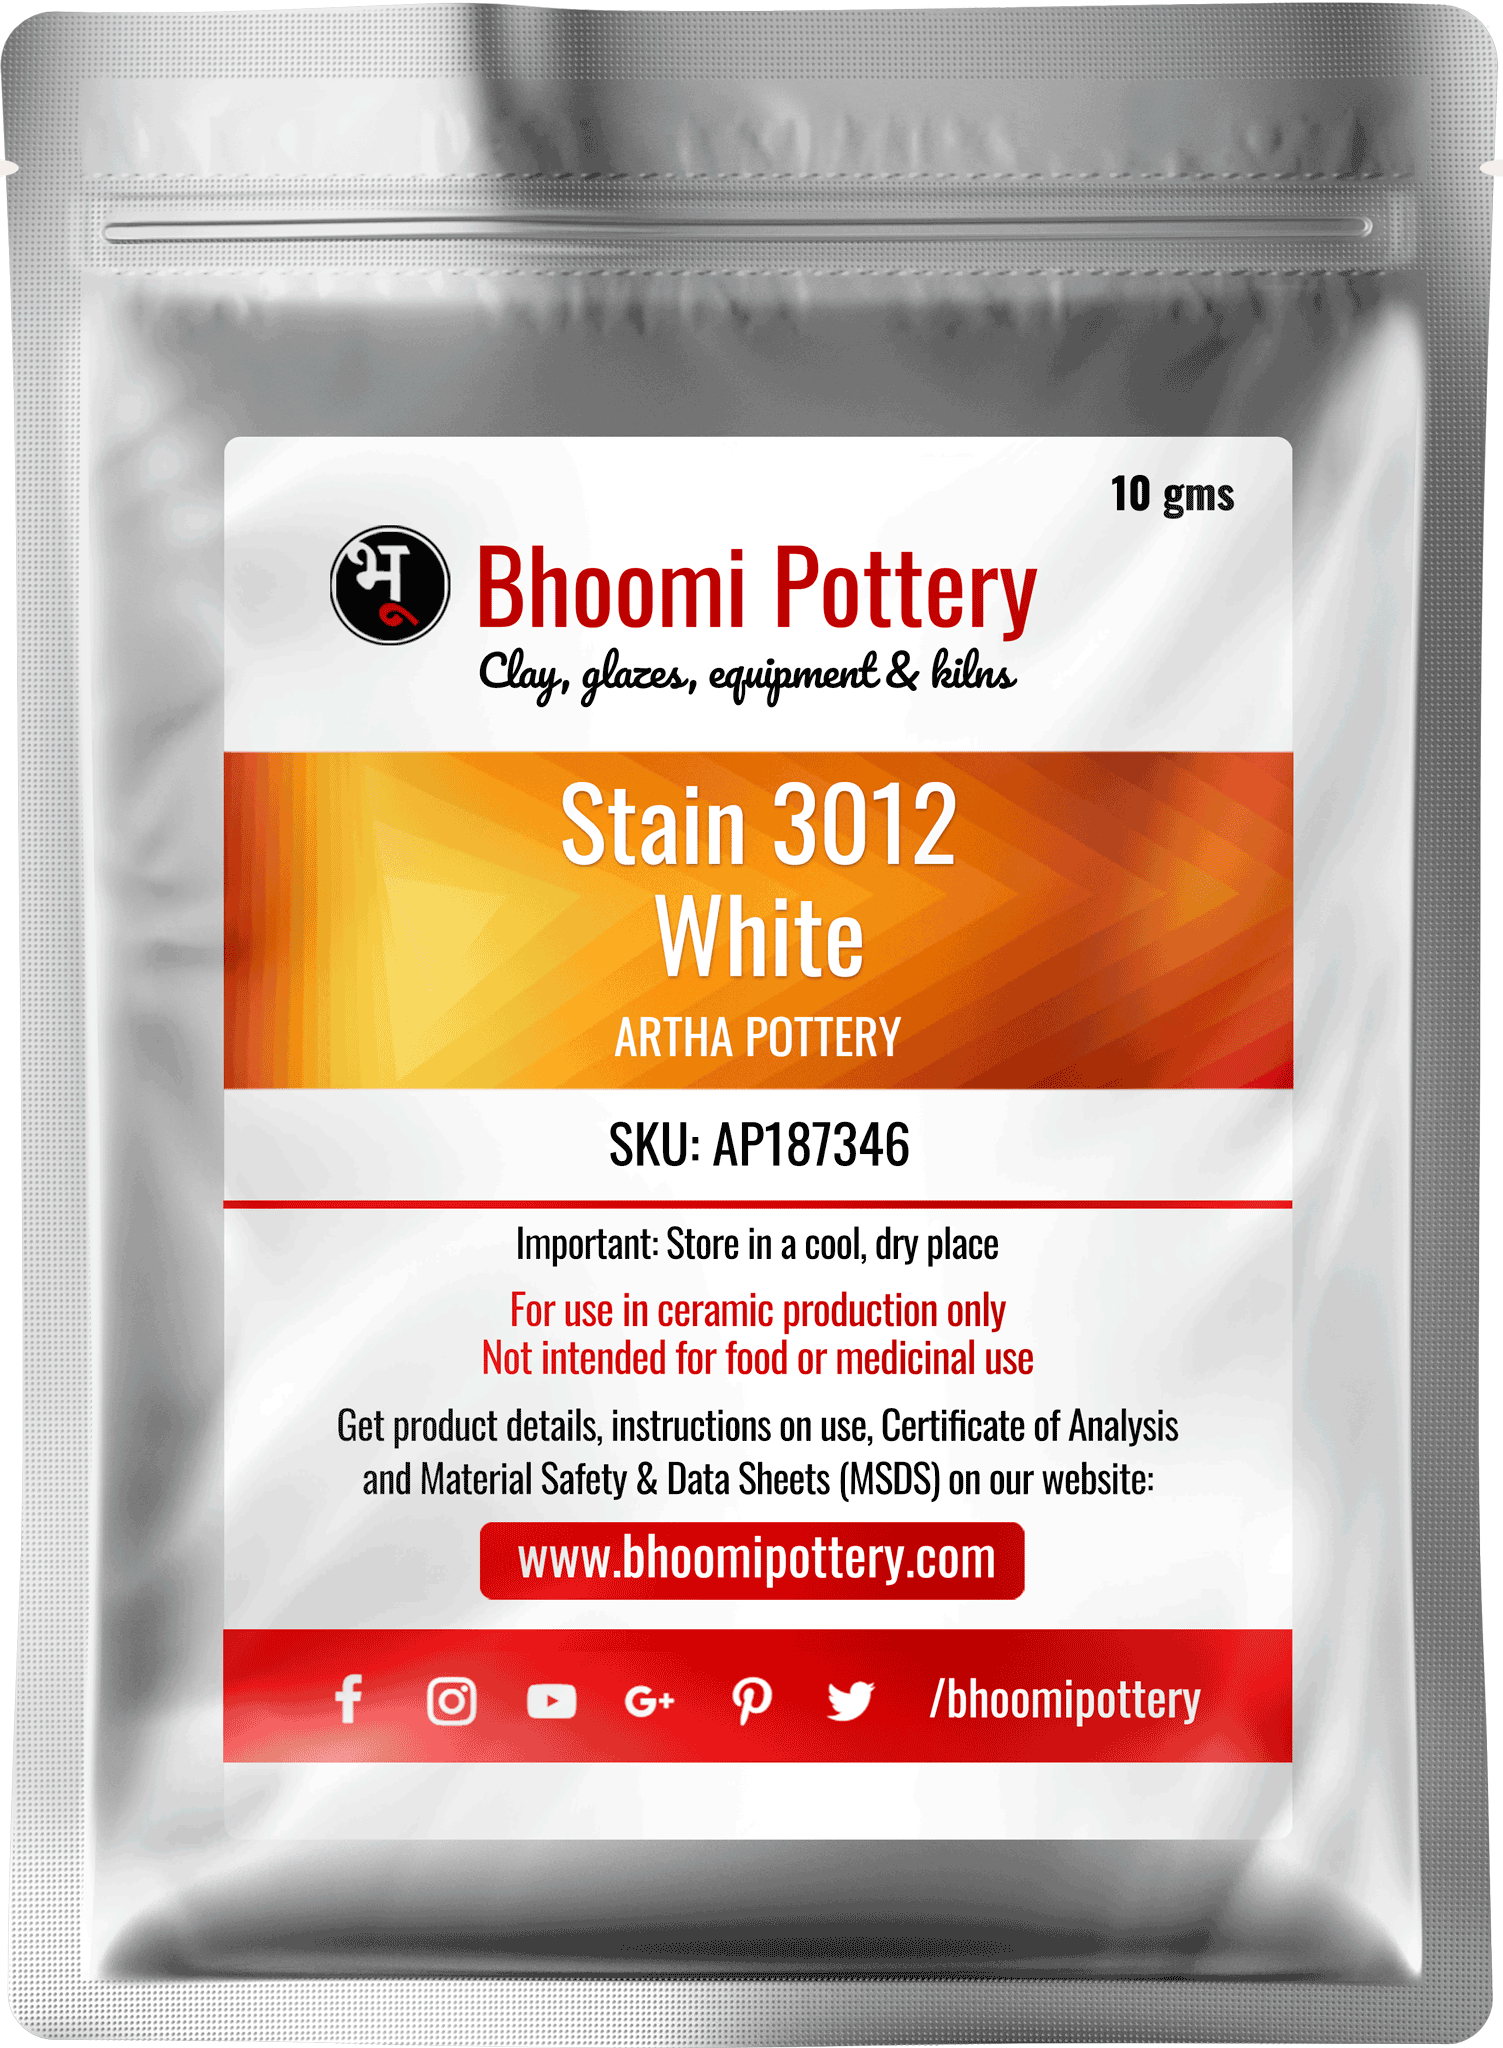 Artha Pottery Ceramic Stain 3012 100 gms for sale in India - Bhoomi Pottery